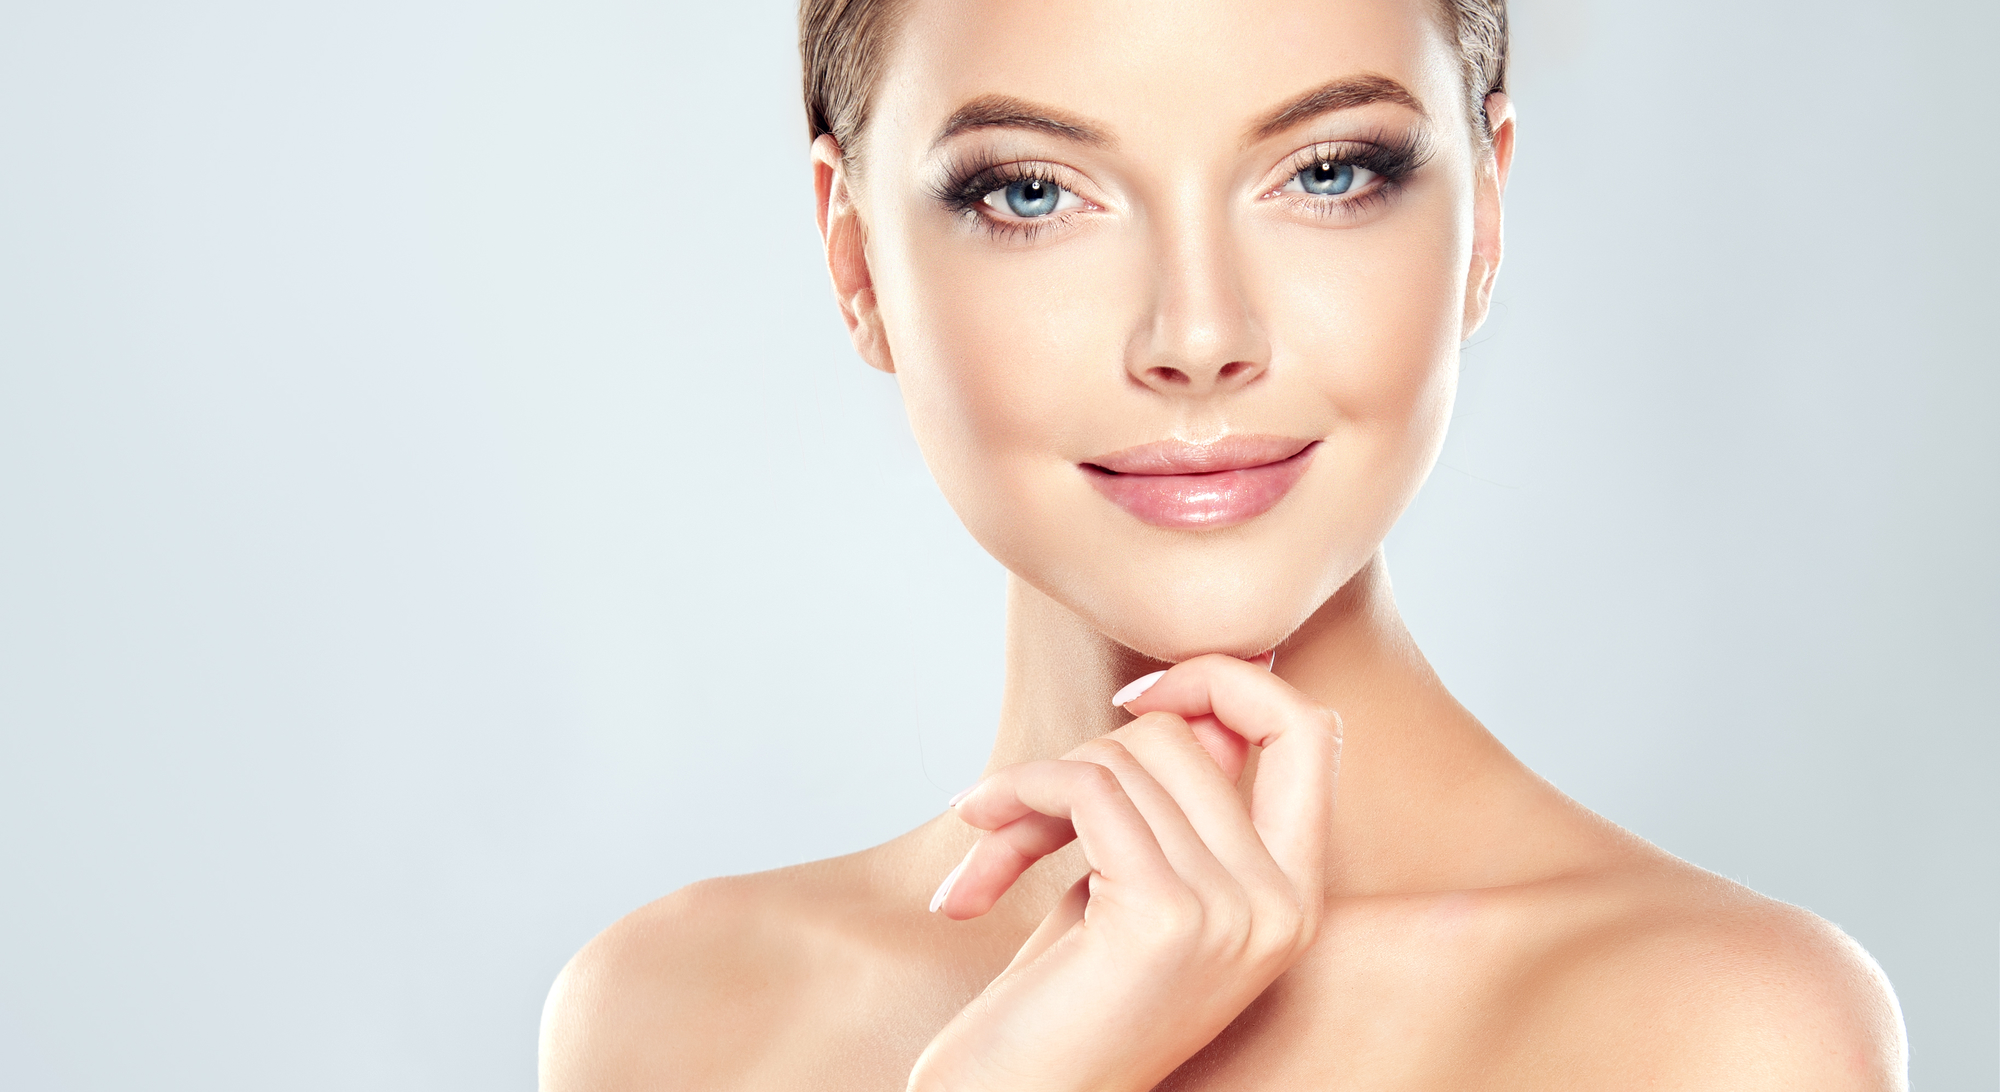 where can i get facial cosmetic surgery in miami beach